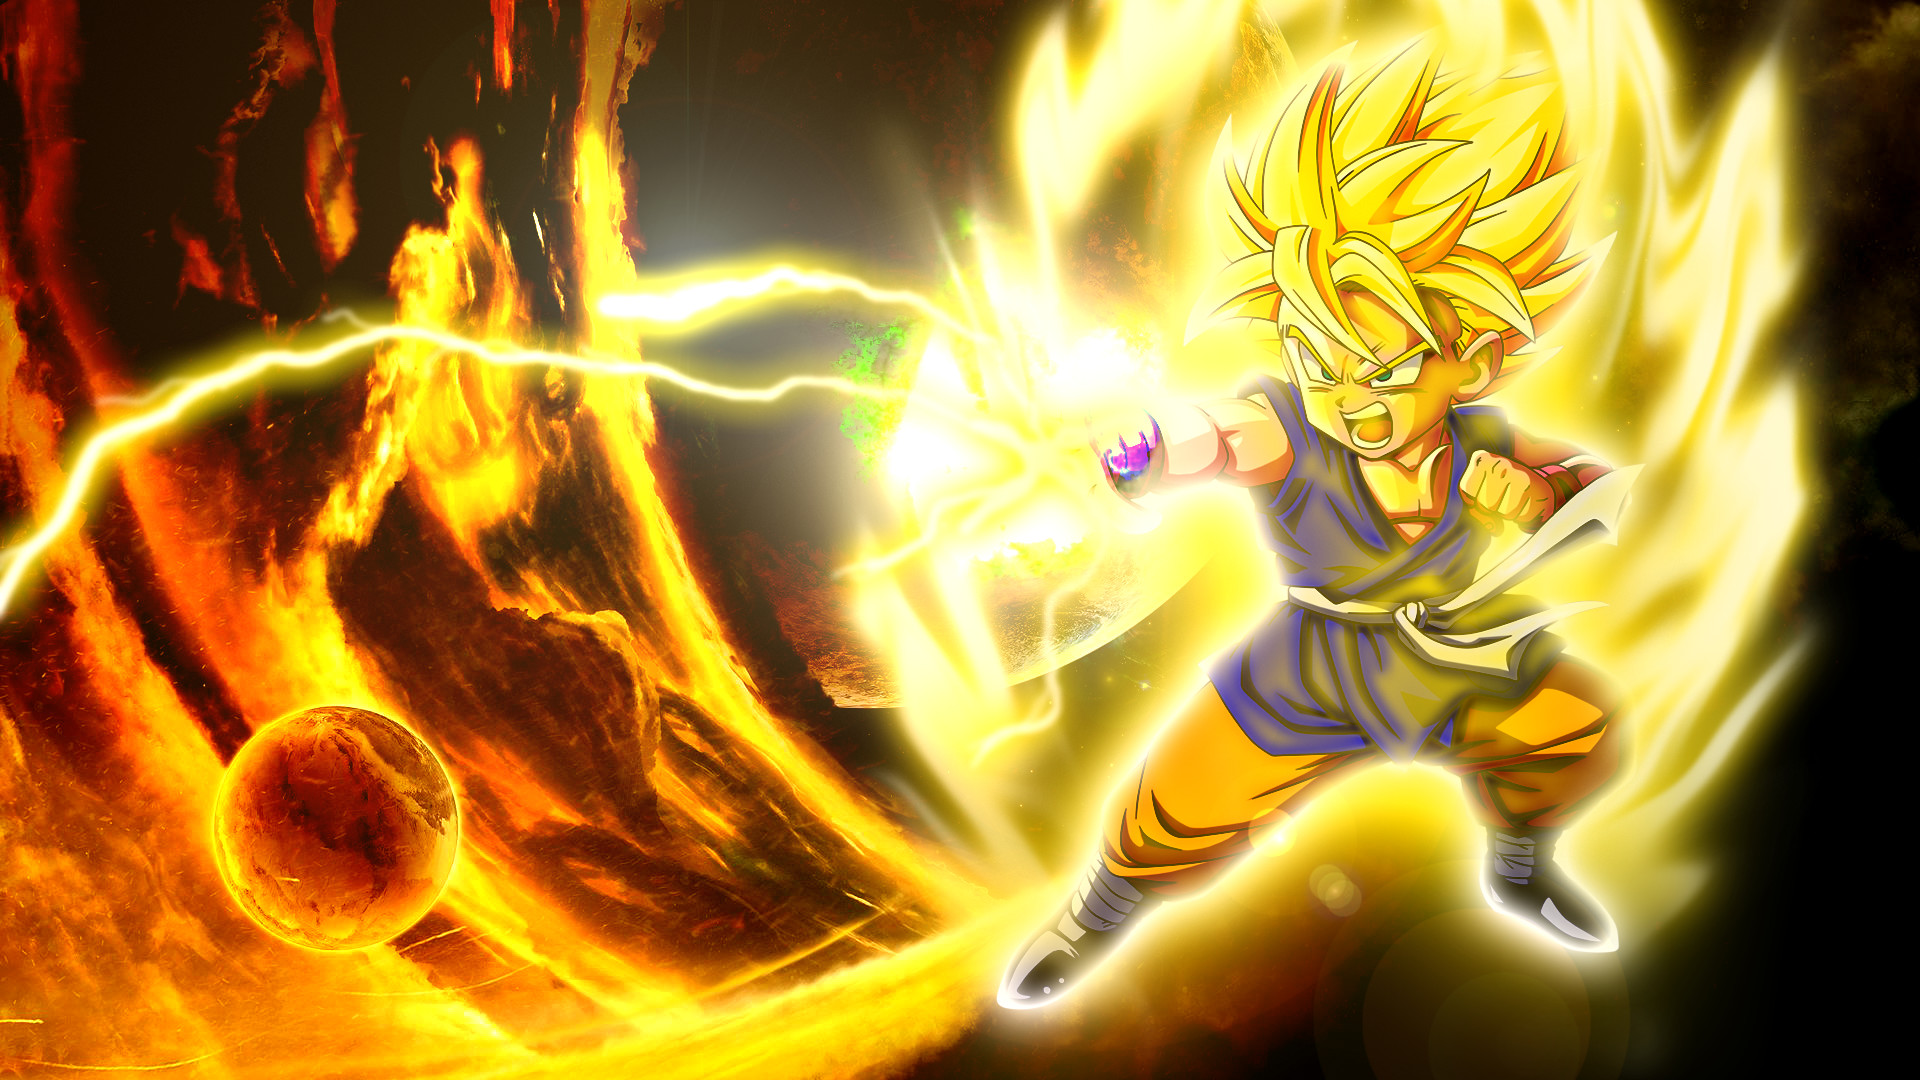 Goku wallpapers hd 65 images - Dragon ball gt goku wallpaper ...